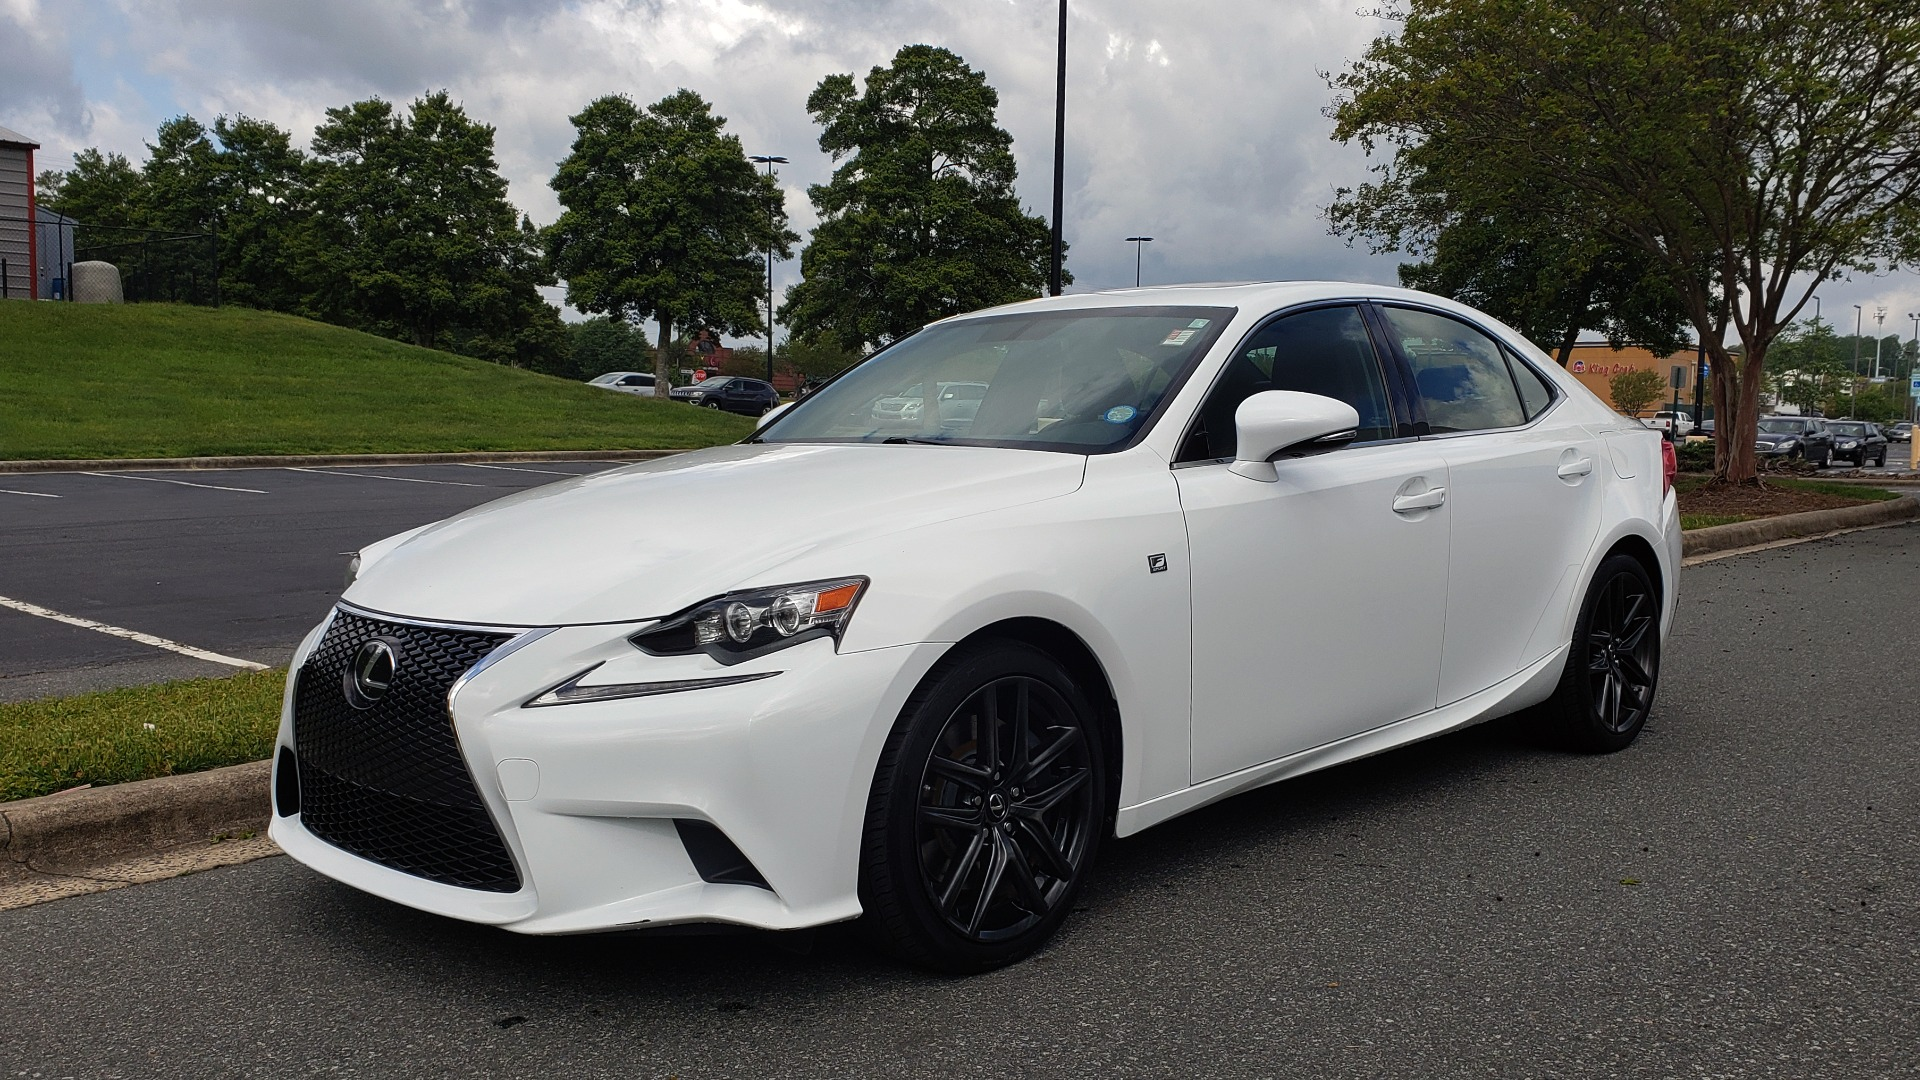 Used 2016 Lexus IS 350 F-SPORT / NAV / BSM / SUNROOF / REARVIEW / VENT SEATS for sale Sold at Formula Imports in Charlotte NC 28227 1